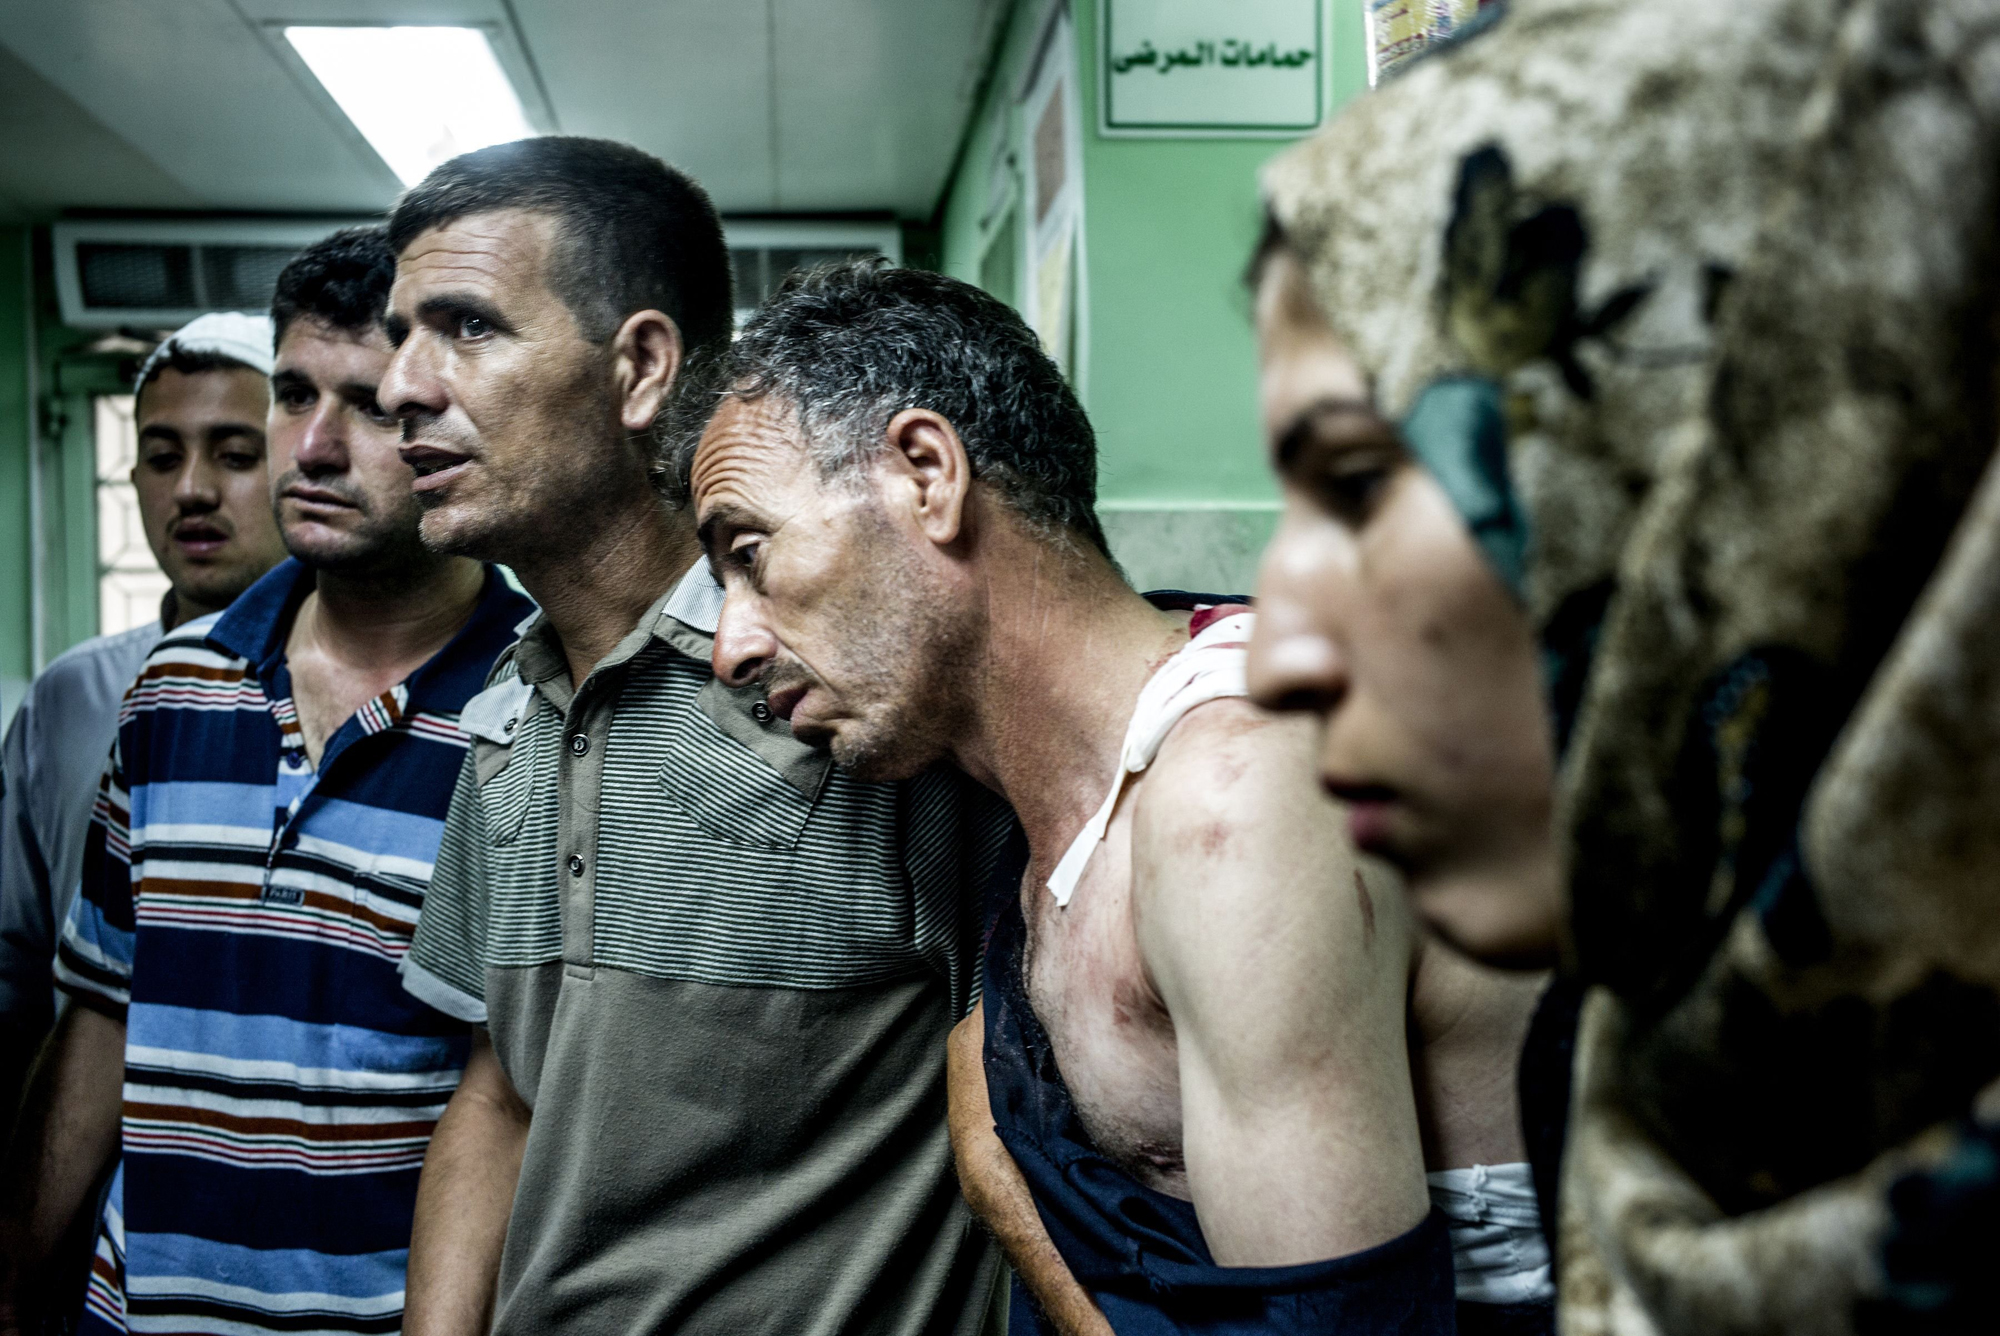 Palestinian civilians wounded during Israeli shelling of a U.N. school wait at the Kamal Odwan Hospital in northern Gaza Strip on July 30, 2014